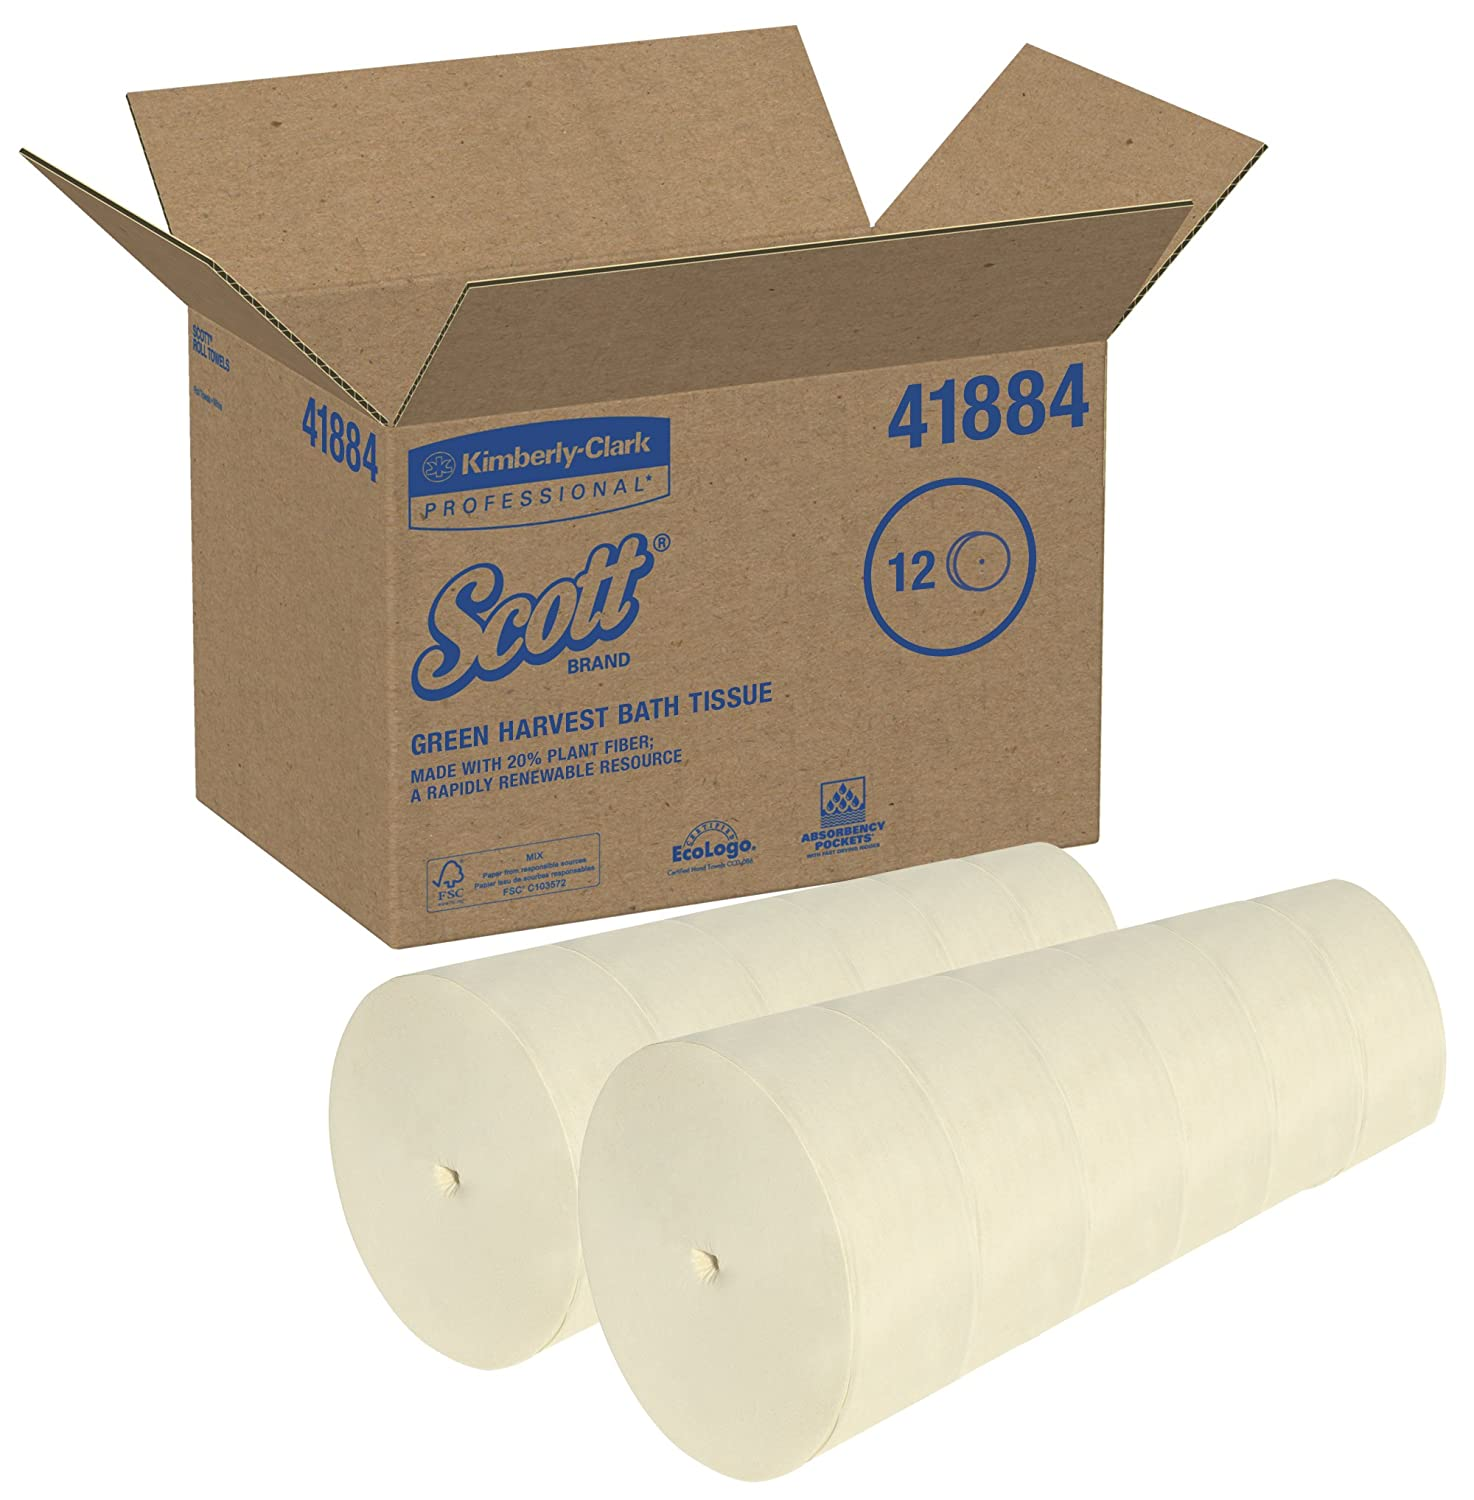 Amazon.com: Scott Coreless Jumbo Roll Toilet Paper (41884), with Rapidly Renewable Plant Fiber (Green Harvest), 2-Ply, Soft Wheat Color, 12 Rolls / Case, ...